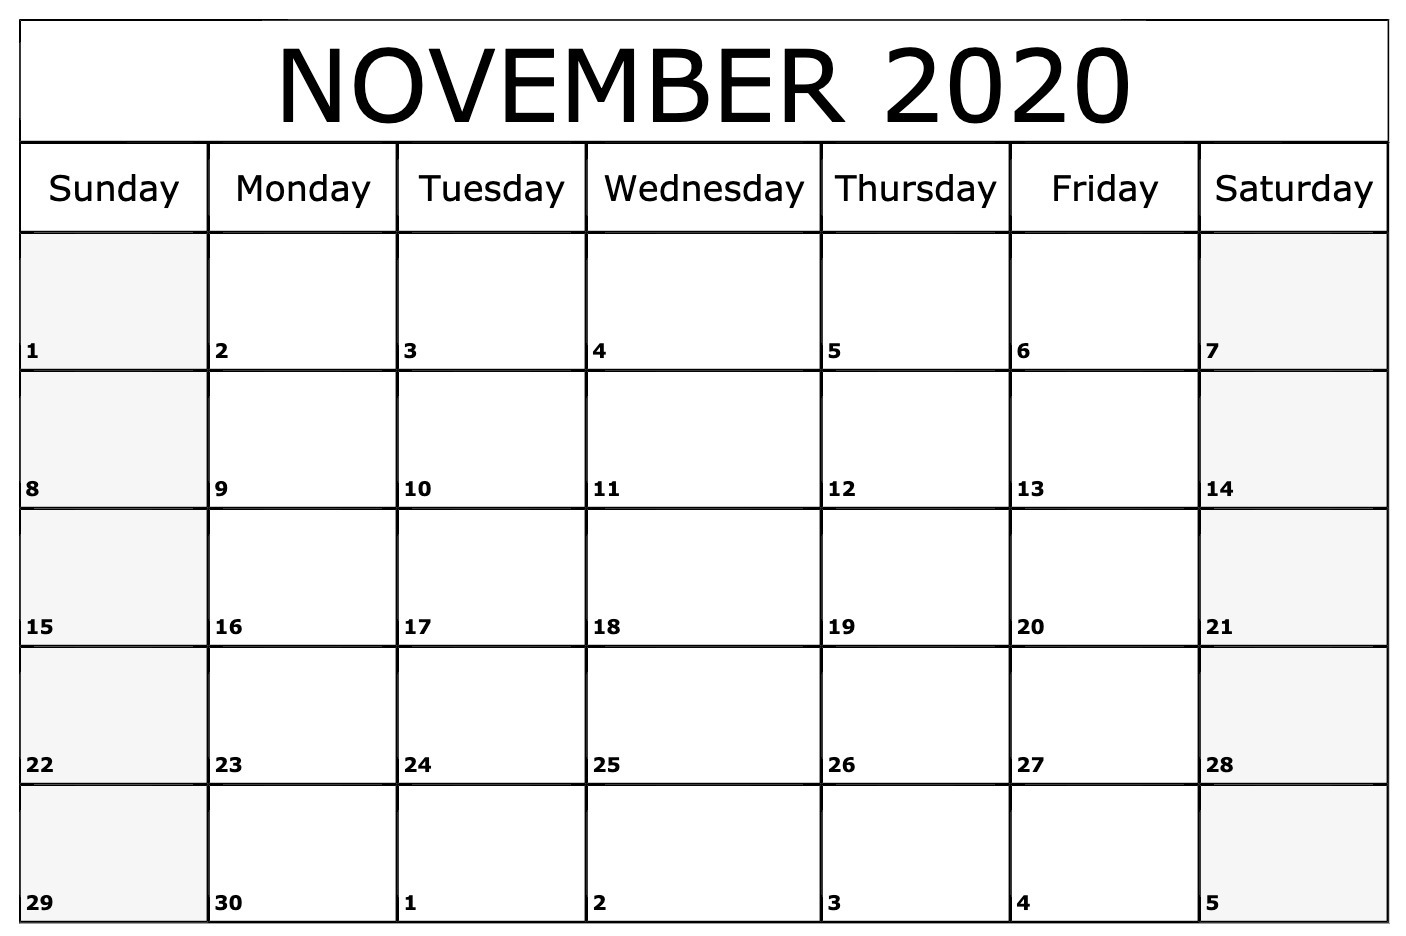 November 2020 Calendar Pdf, Word, Excel Template pertaining to November Calendar Excel 2020